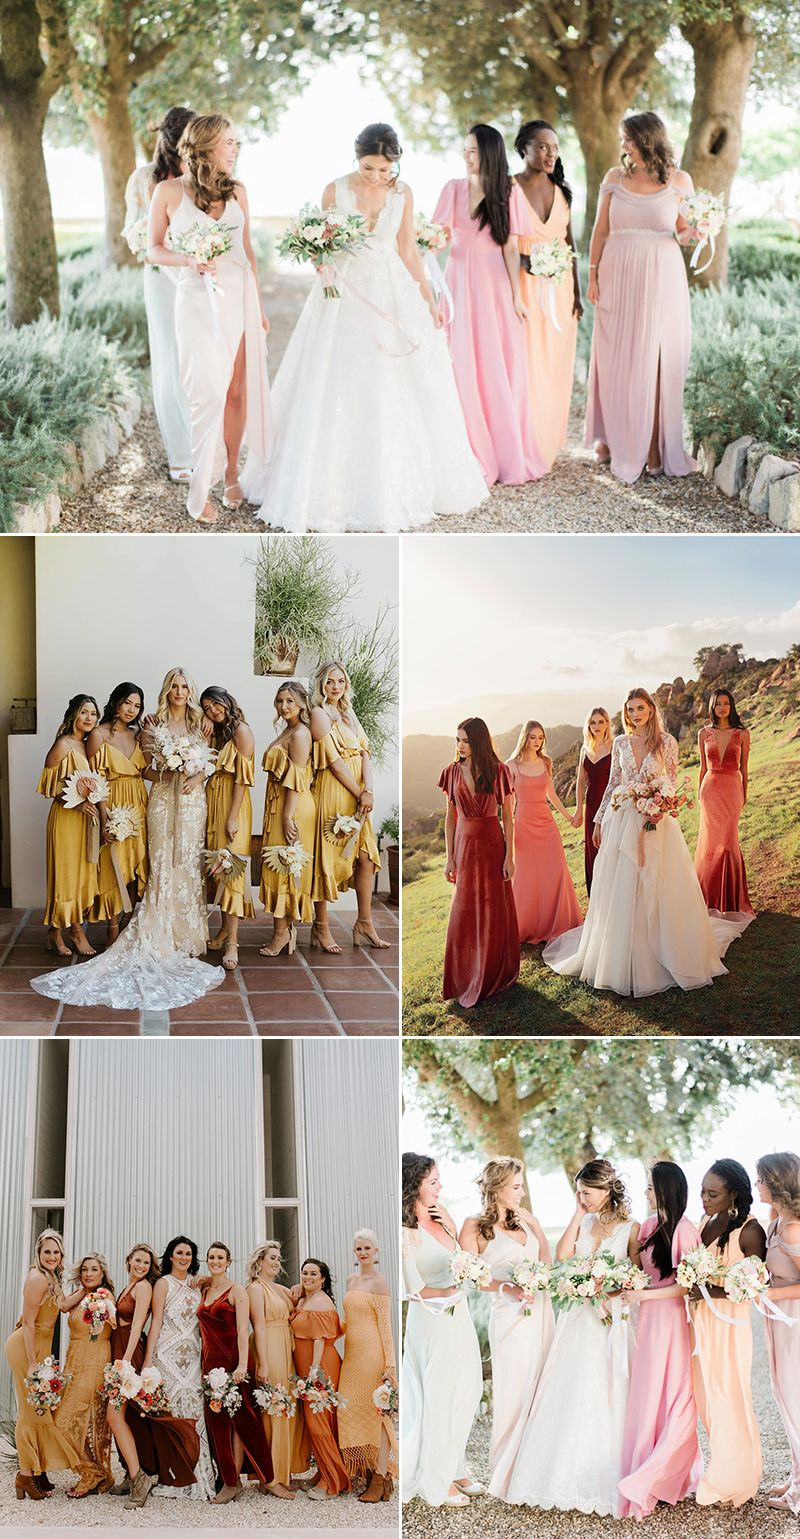 Top 5 Bridesmaid Dress Color Combinations For Spring And Summer Weddings Featuring Unique Mismatched Looks Bridesmaid Colors Bridesmaid Yellow Bridesmaid Dresses [ 1539 x 800 Pixel ]